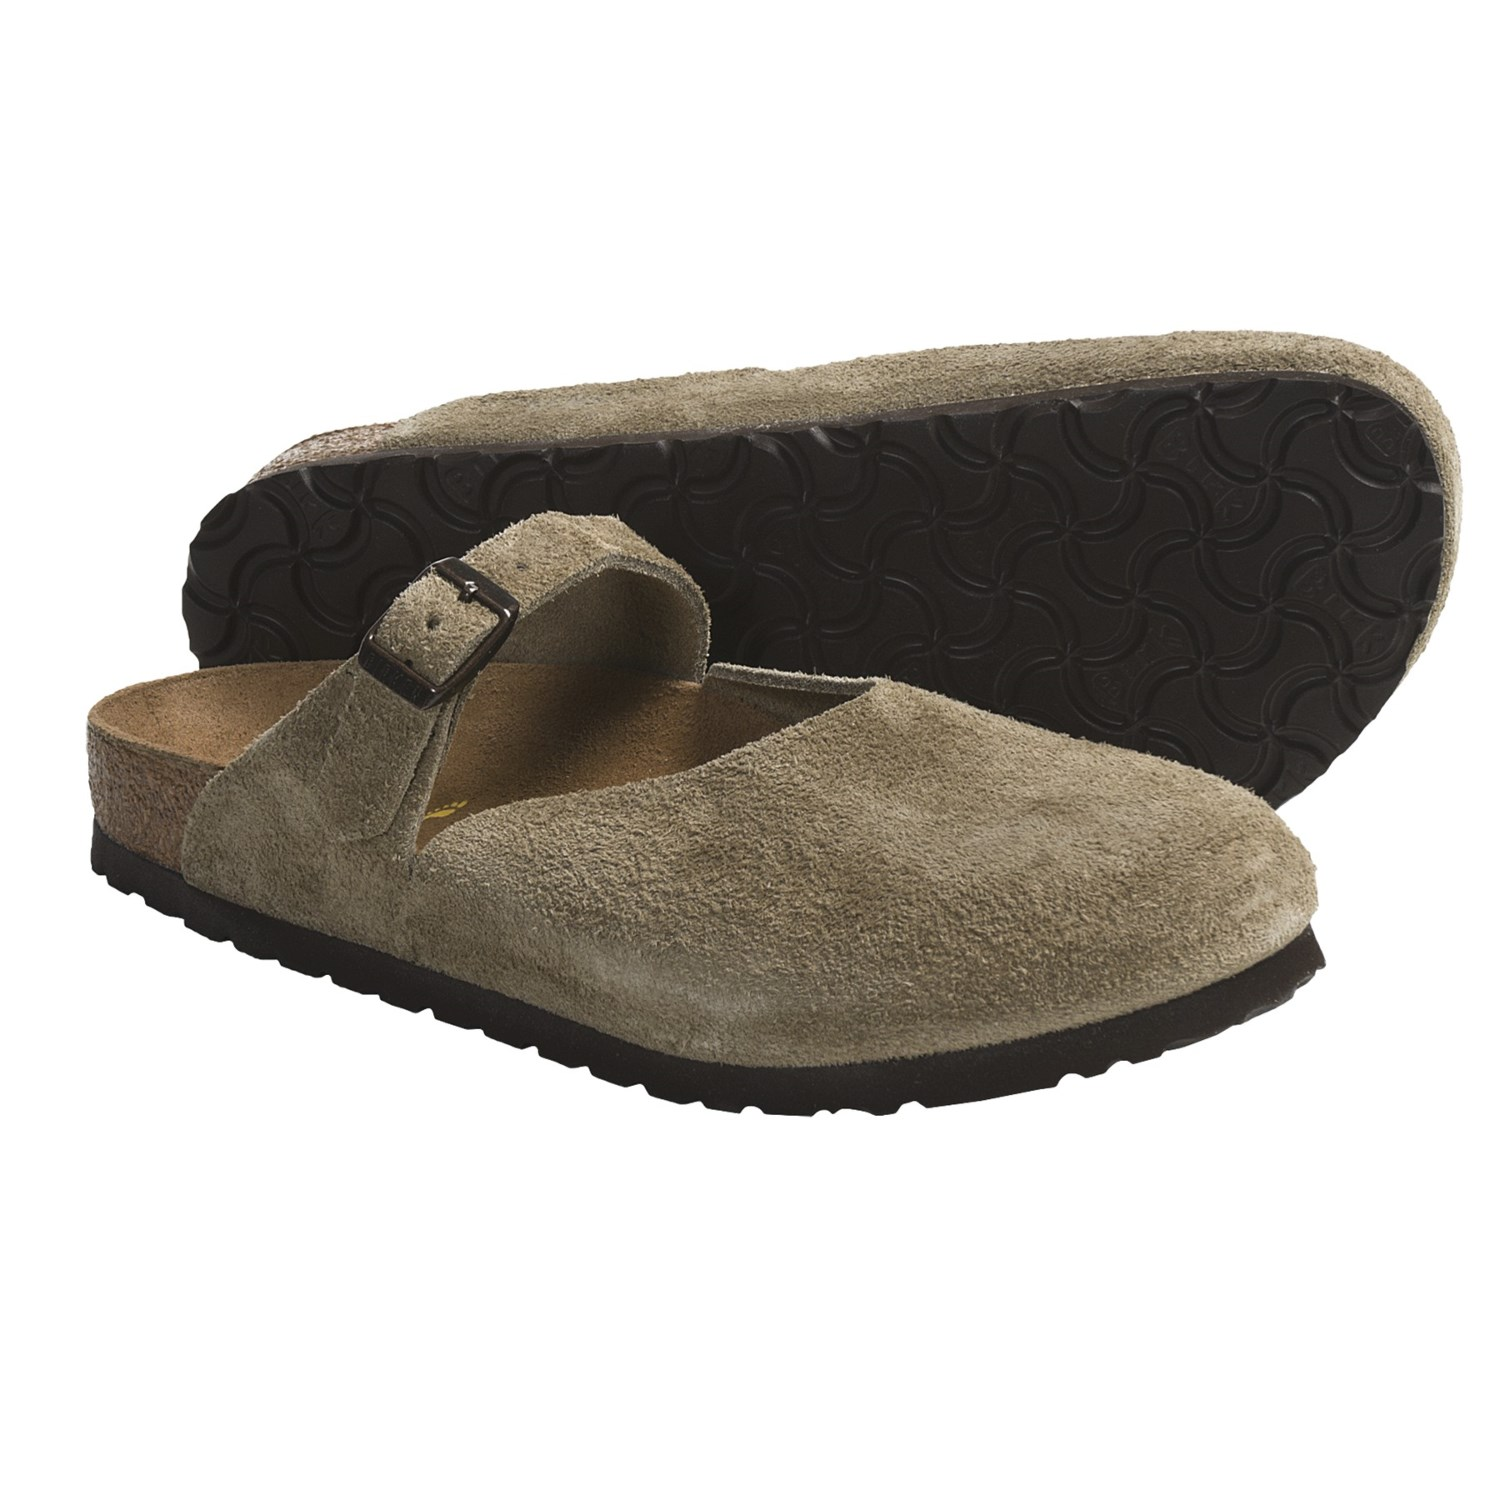 Birkenstock Rosemead Mary Jane Shoes - Leather (For Women) - Save